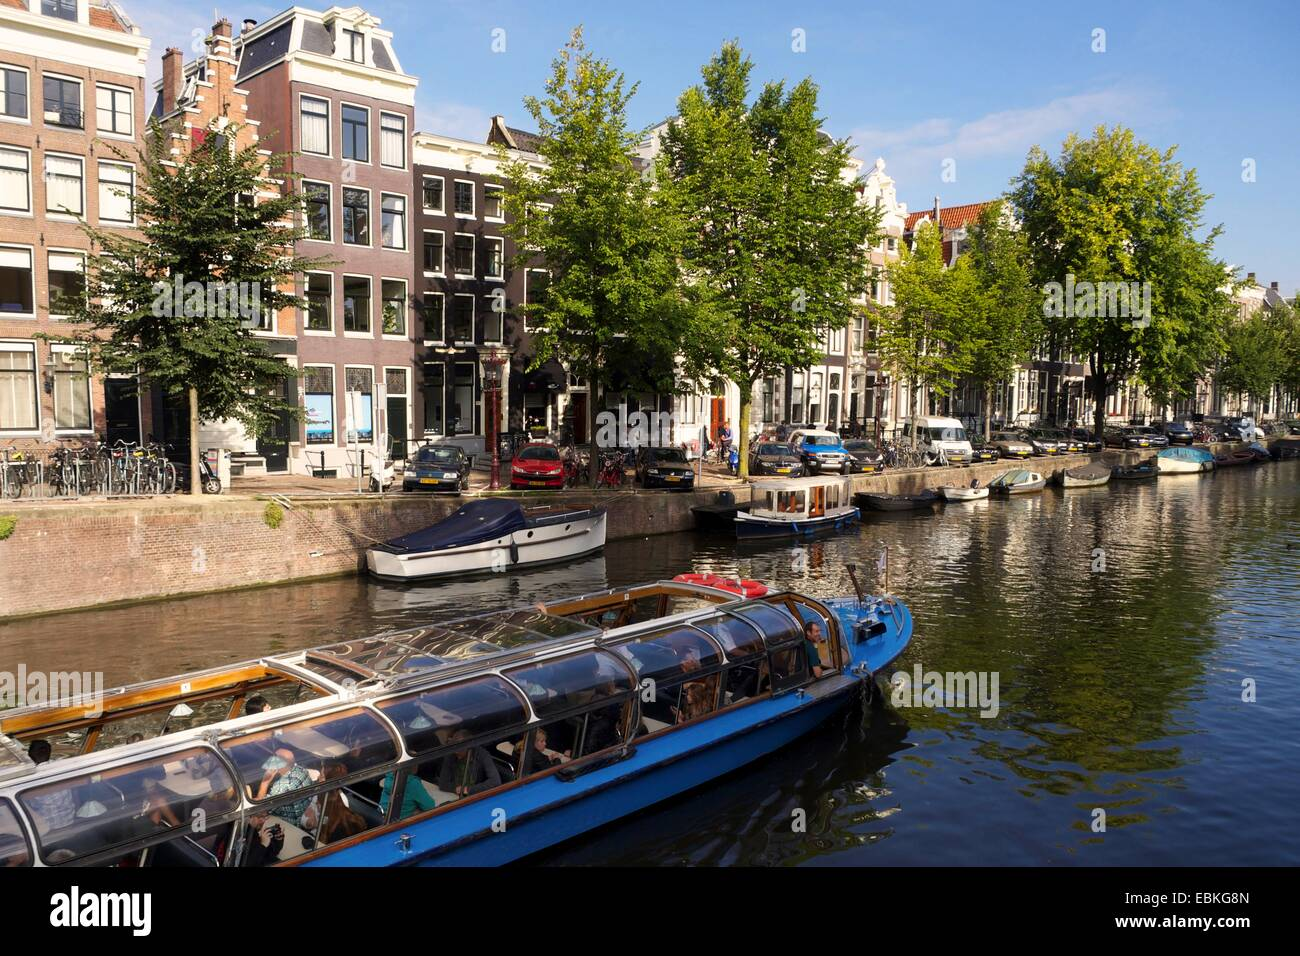 Tour Boat on the Prinsengracht canal , Amsterdam, Netherlands, Europe - Stock Image